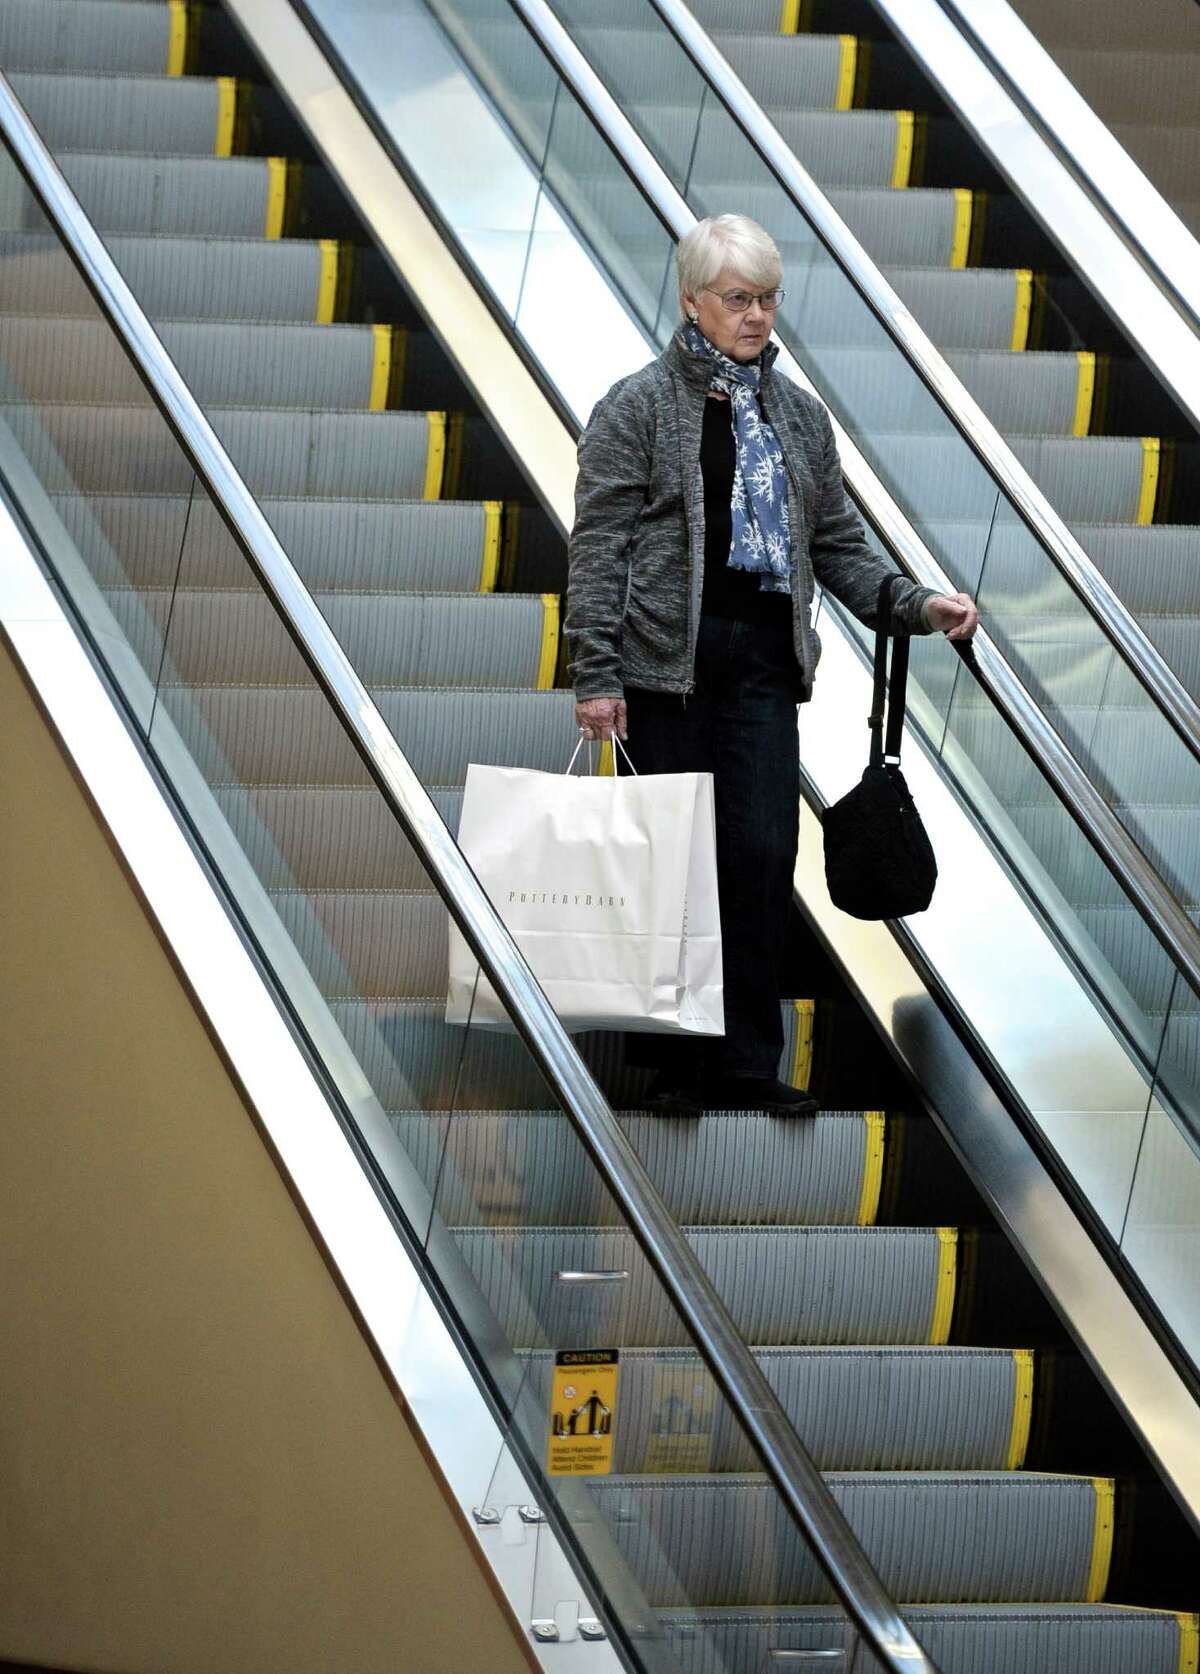 Pat Cooney, of Danbury, rides the escalator while shopping in the Danbury Fair Mall, on Wednesday, December 17, 2014.